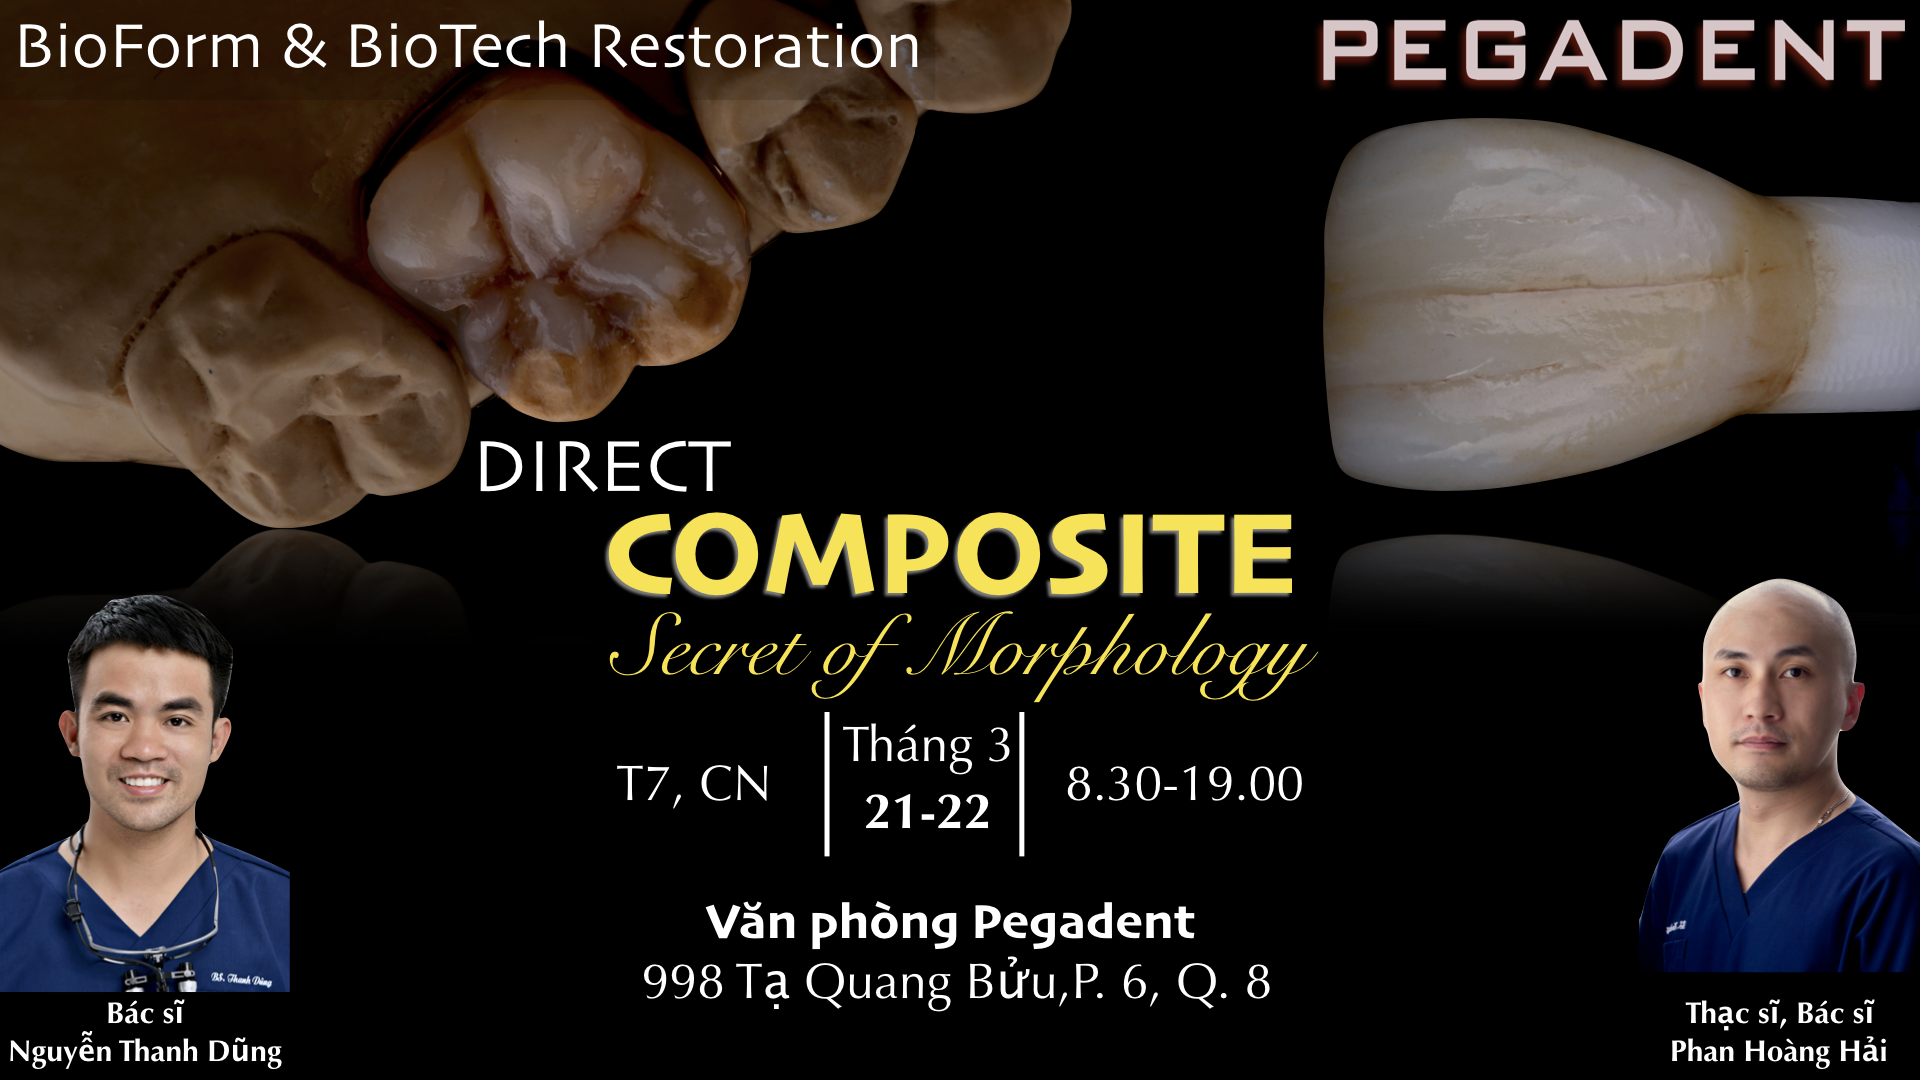 Direct Composite (Poster 1).001.png.001